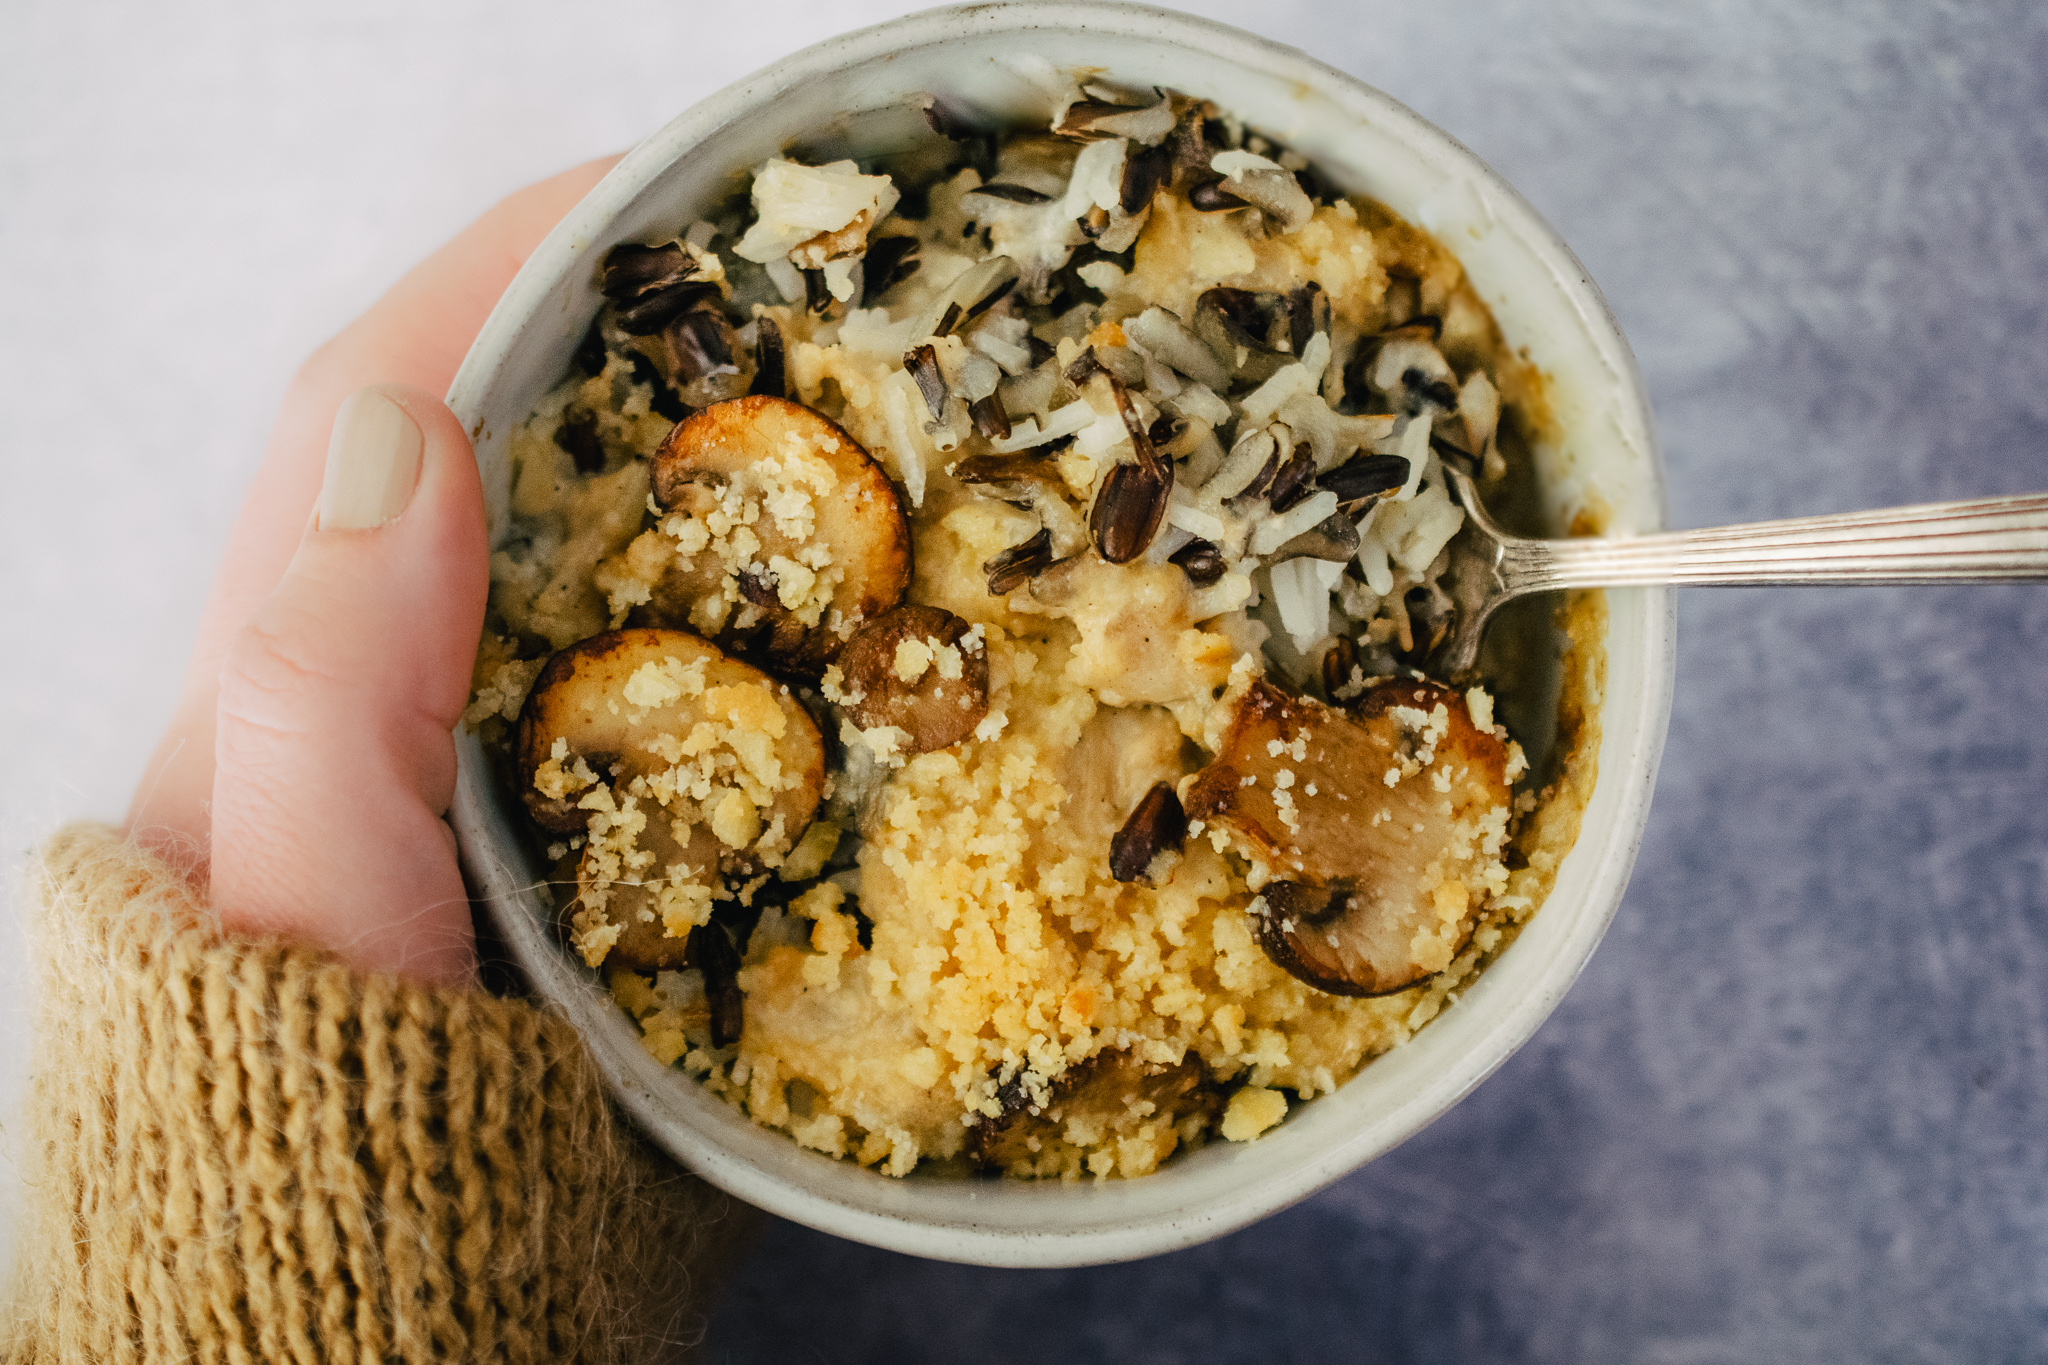 hand with tan sweater holding an irregular white stoneware bowl of mushroom and wild rice casserole with an antique fork